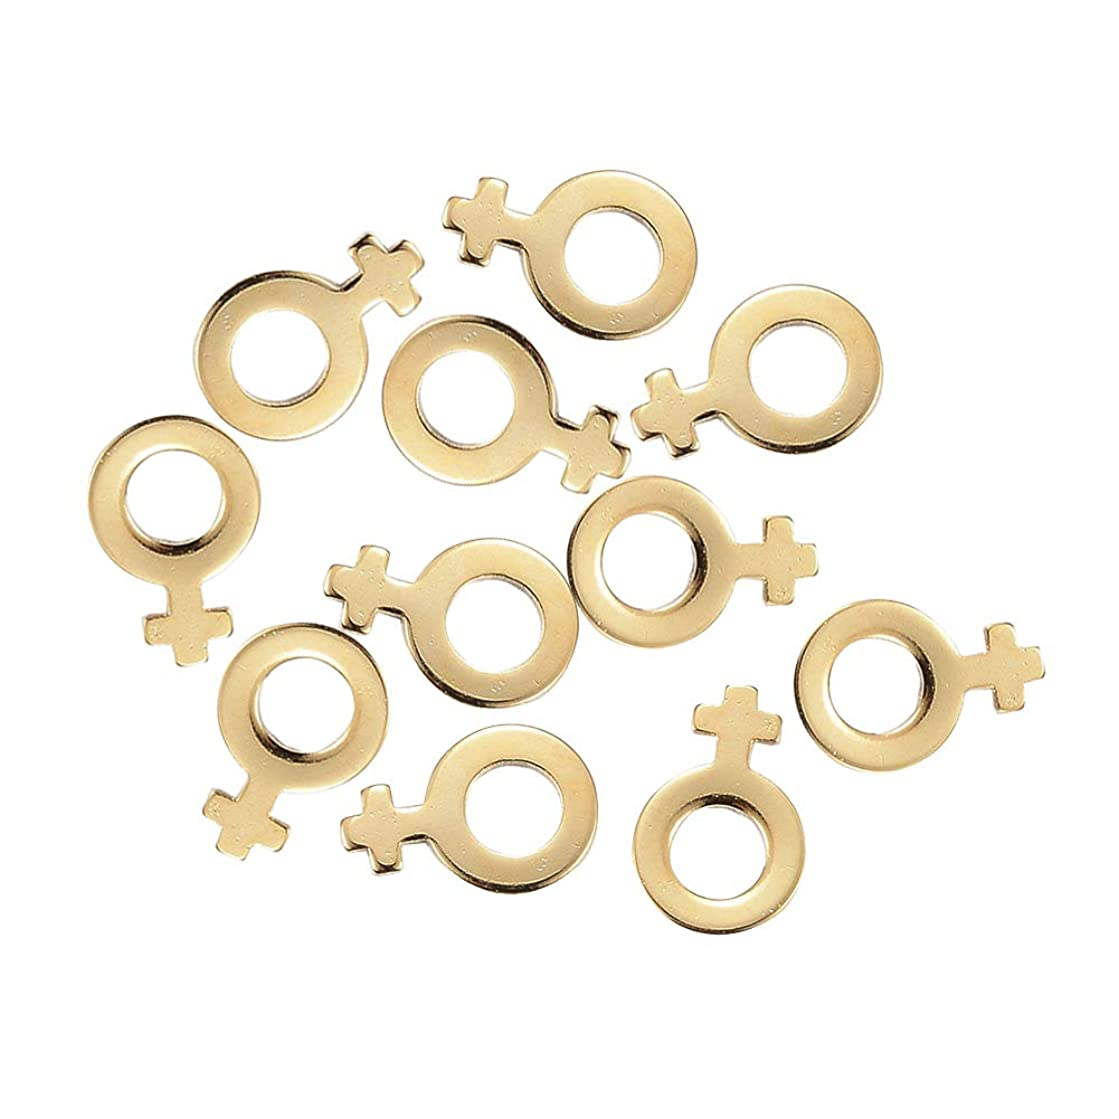 UNICRAFTABLE 100pcs 304 Stainless Steel Charms Golden Symbol-Female Shape Beads Pendants with 4mm Hole Dangle Charm for DIY Necklace Bracelet Jewelry Making 11x7.5x0.8mm